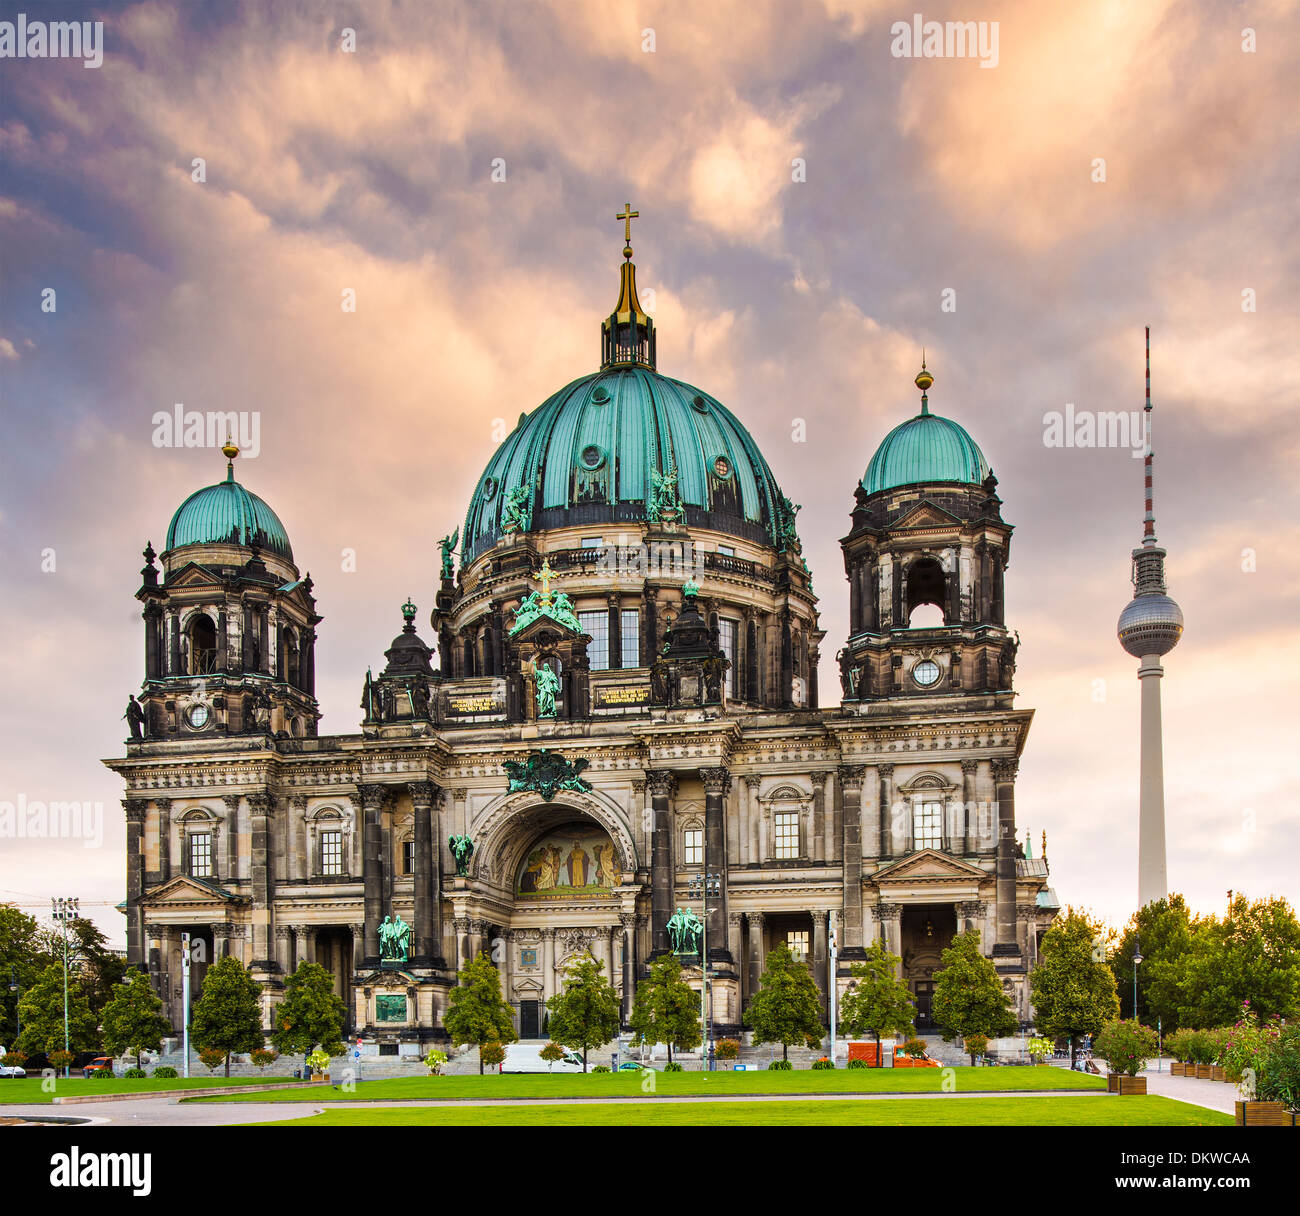 Cathedral of Berlin, Germany. - Stock Image